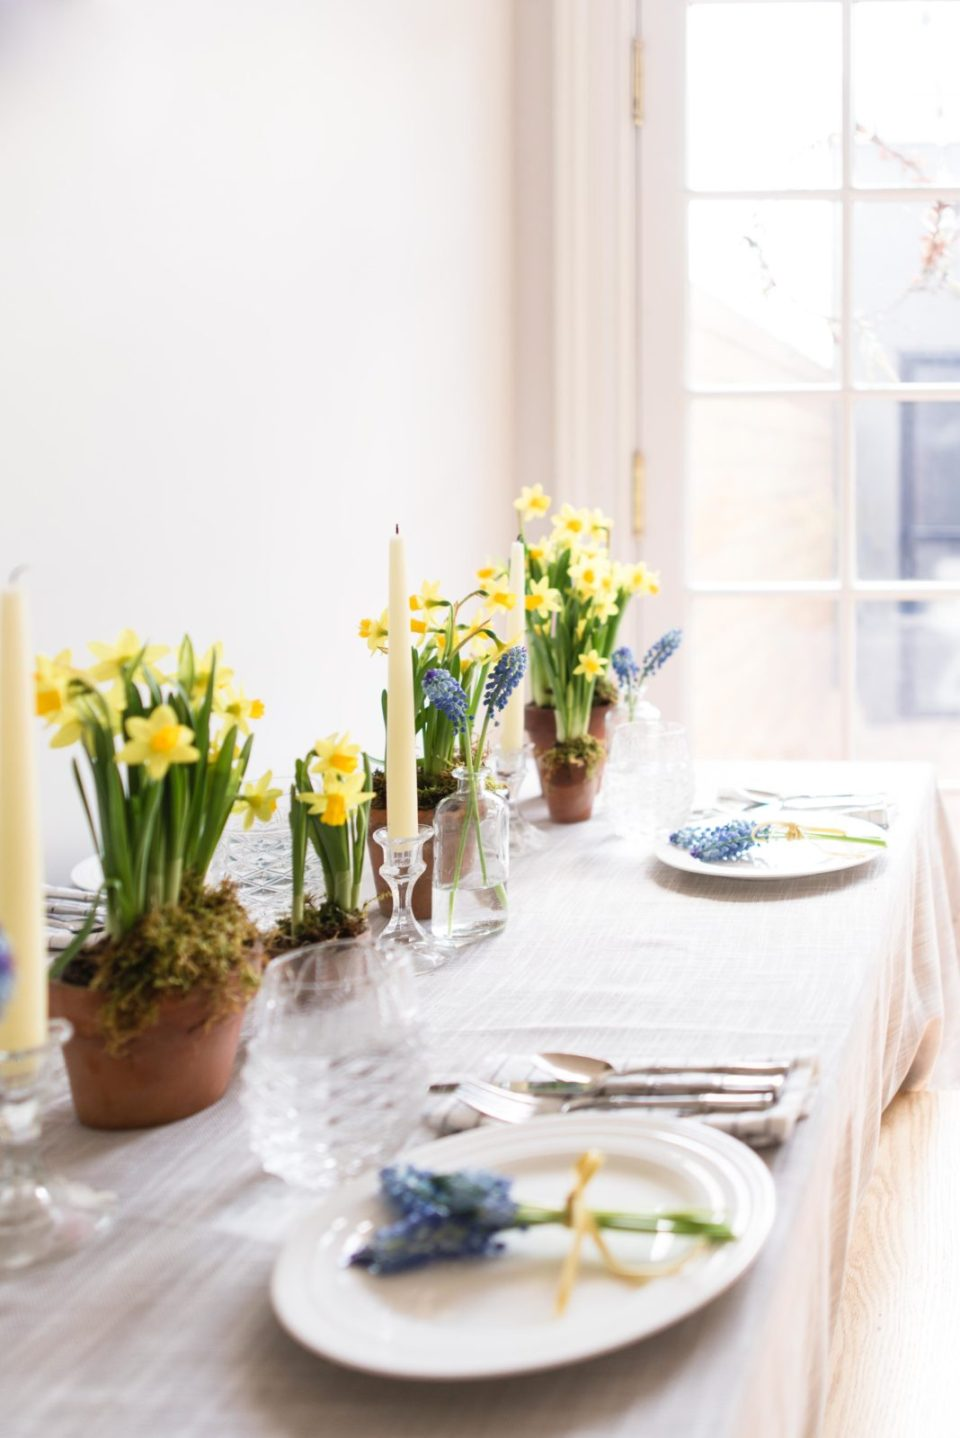 Spring Brunch Table Setting with daffodils